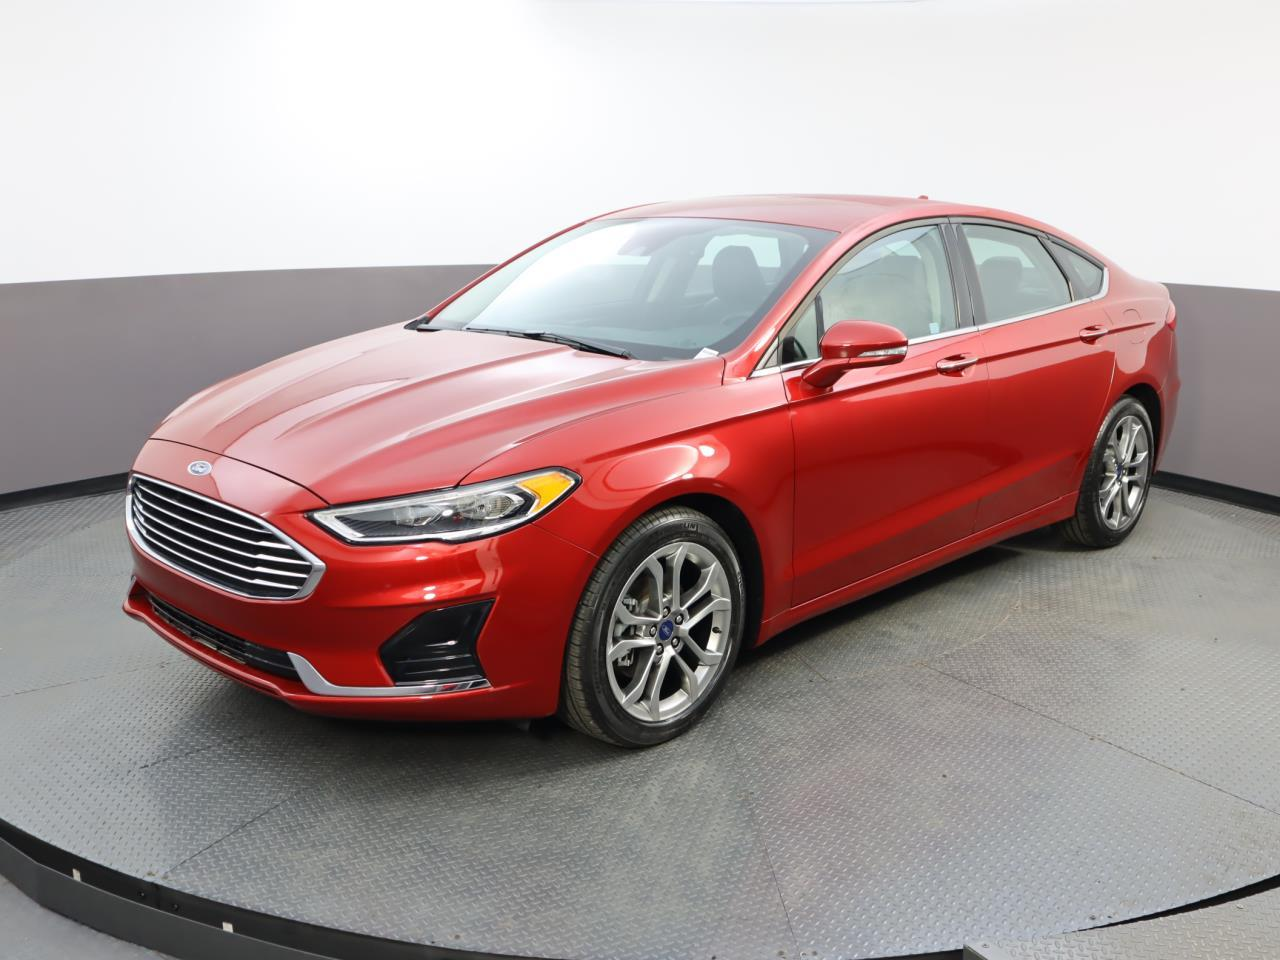 Used FORD FUSION 2020 MIAMI SEL